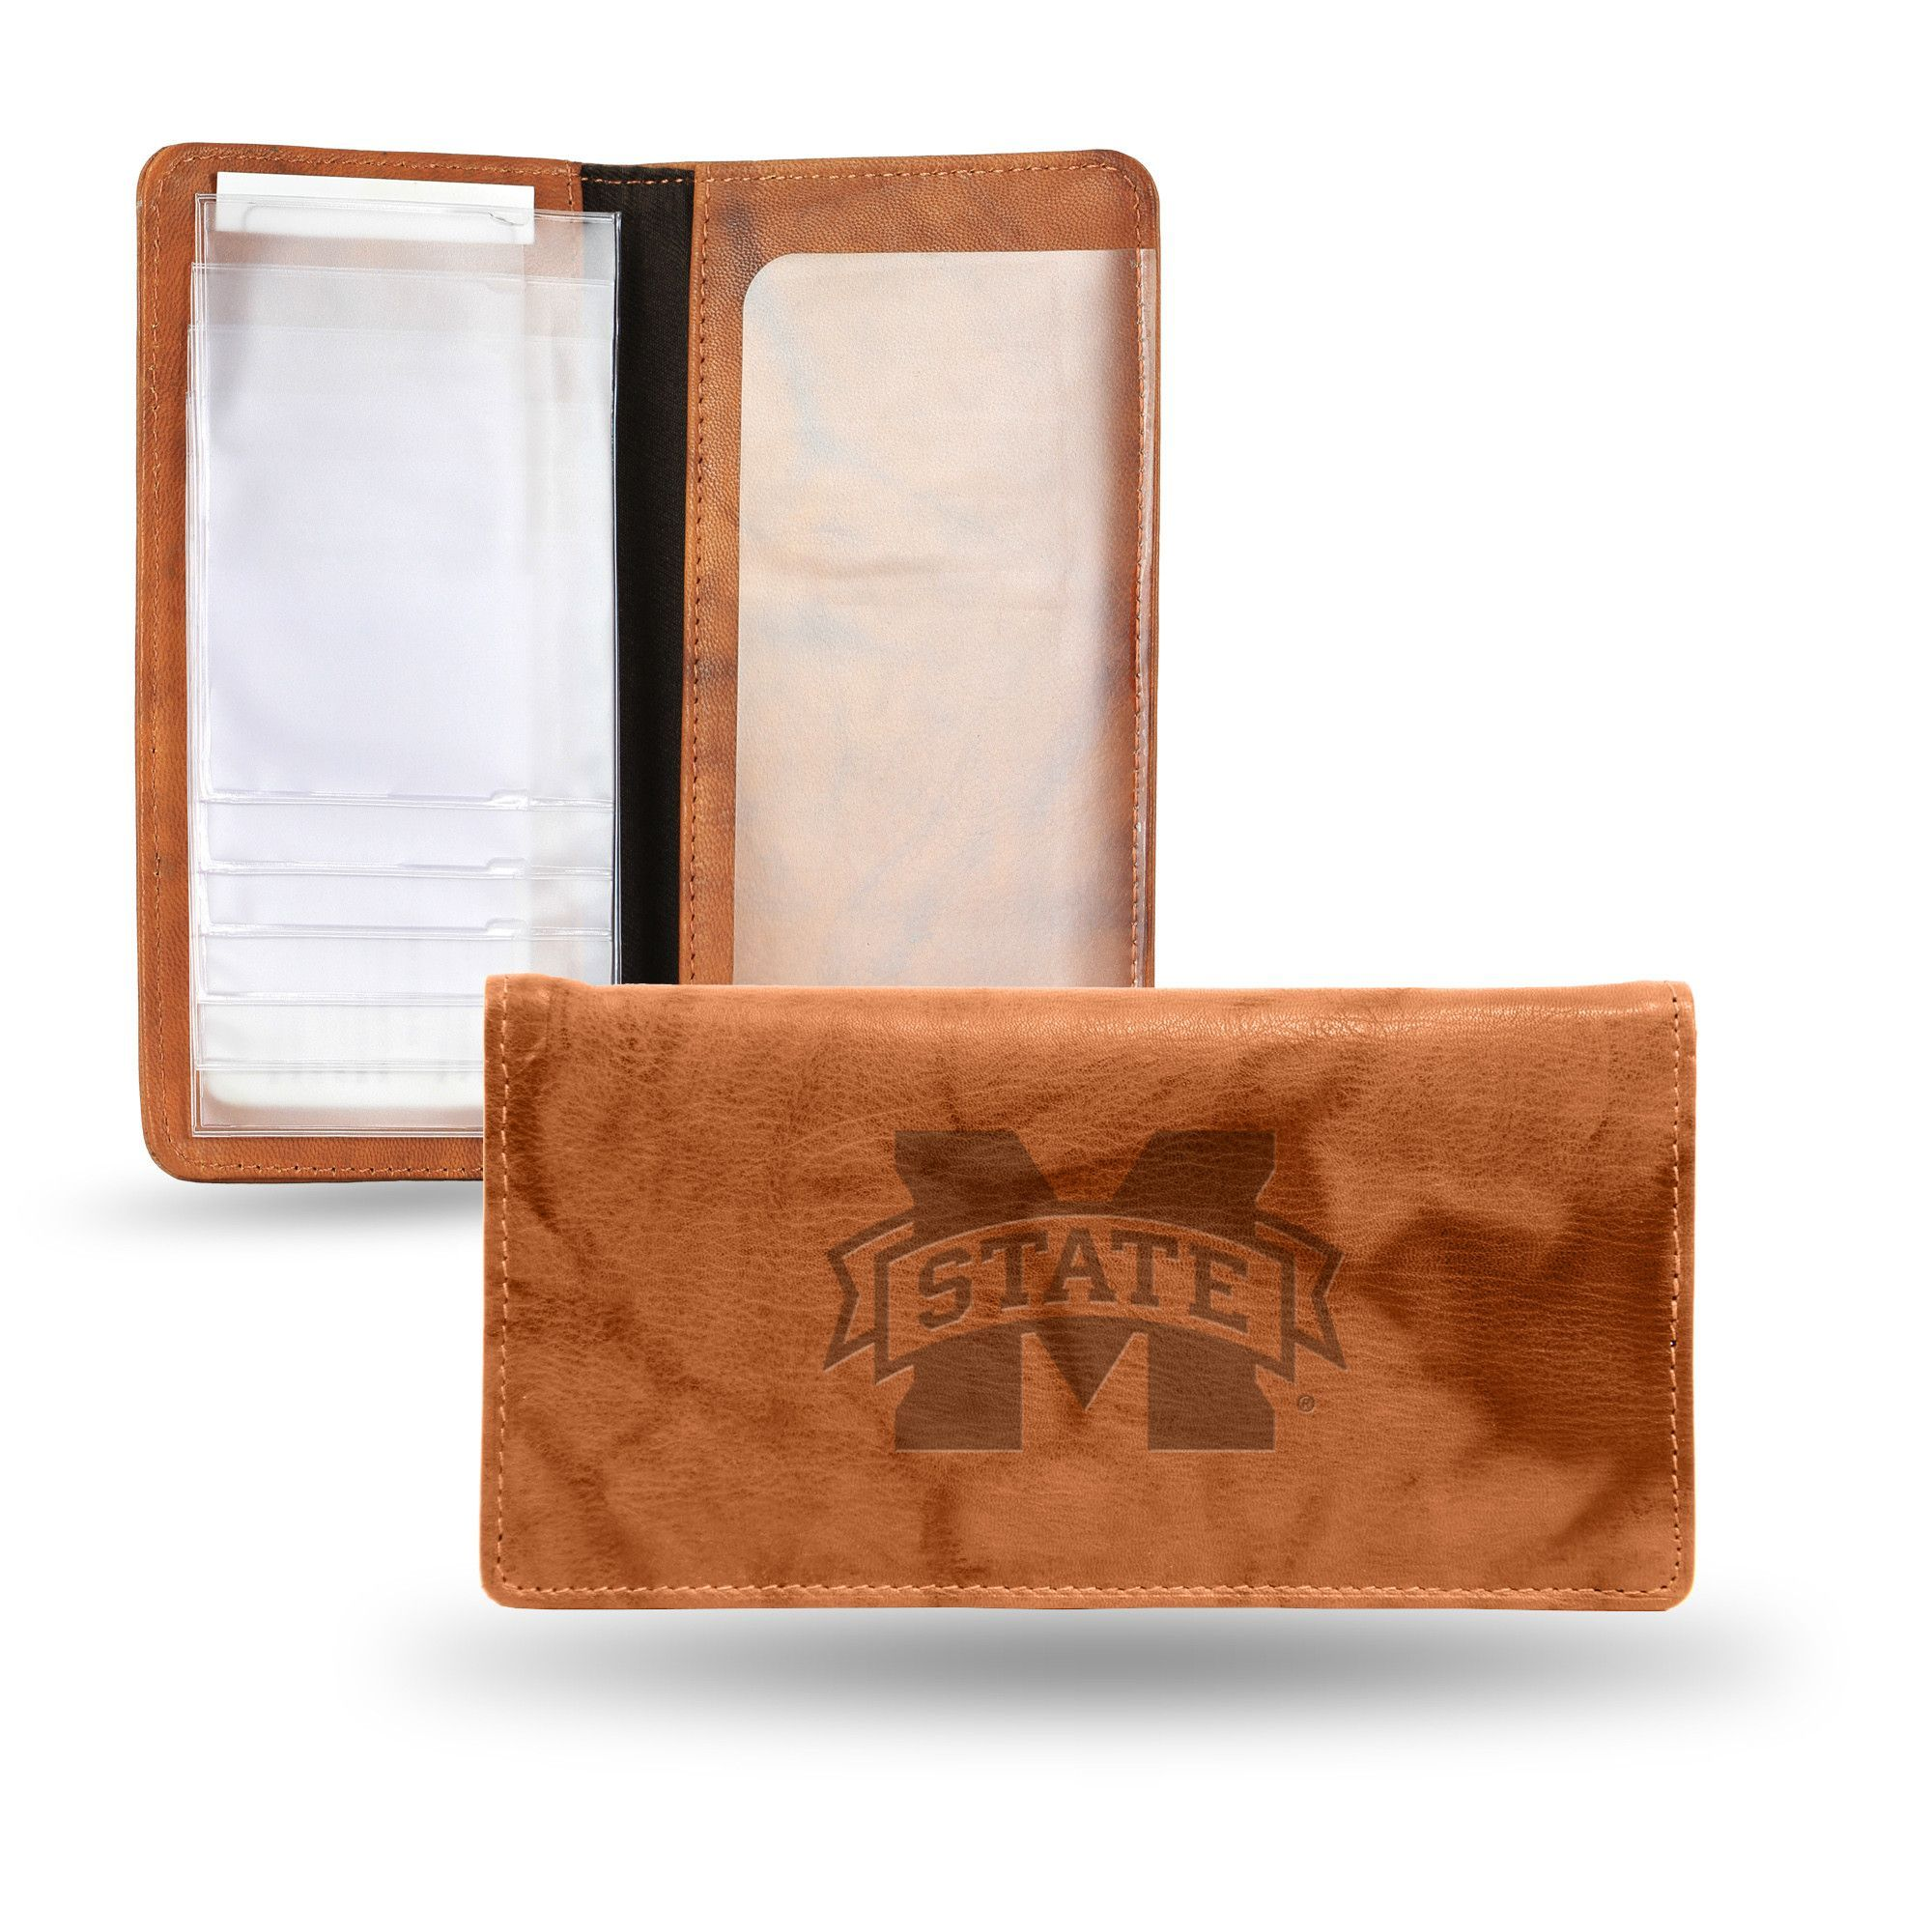 Mississippi State Embossed Checkbook Cover   Products   Pinterest